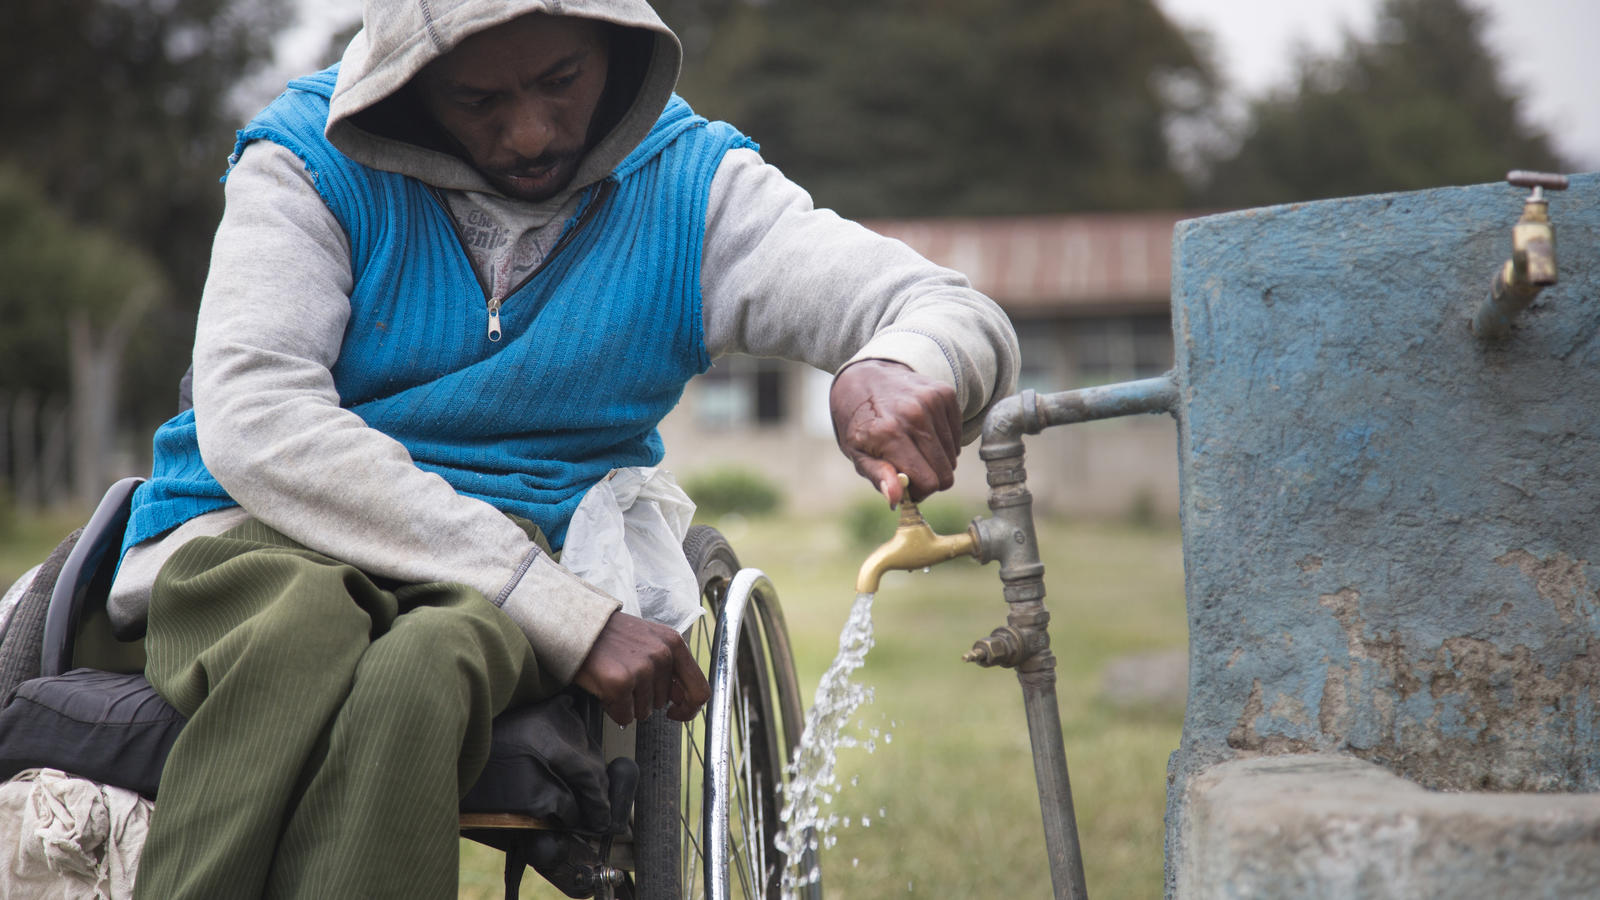 Wheelchair user collects water.